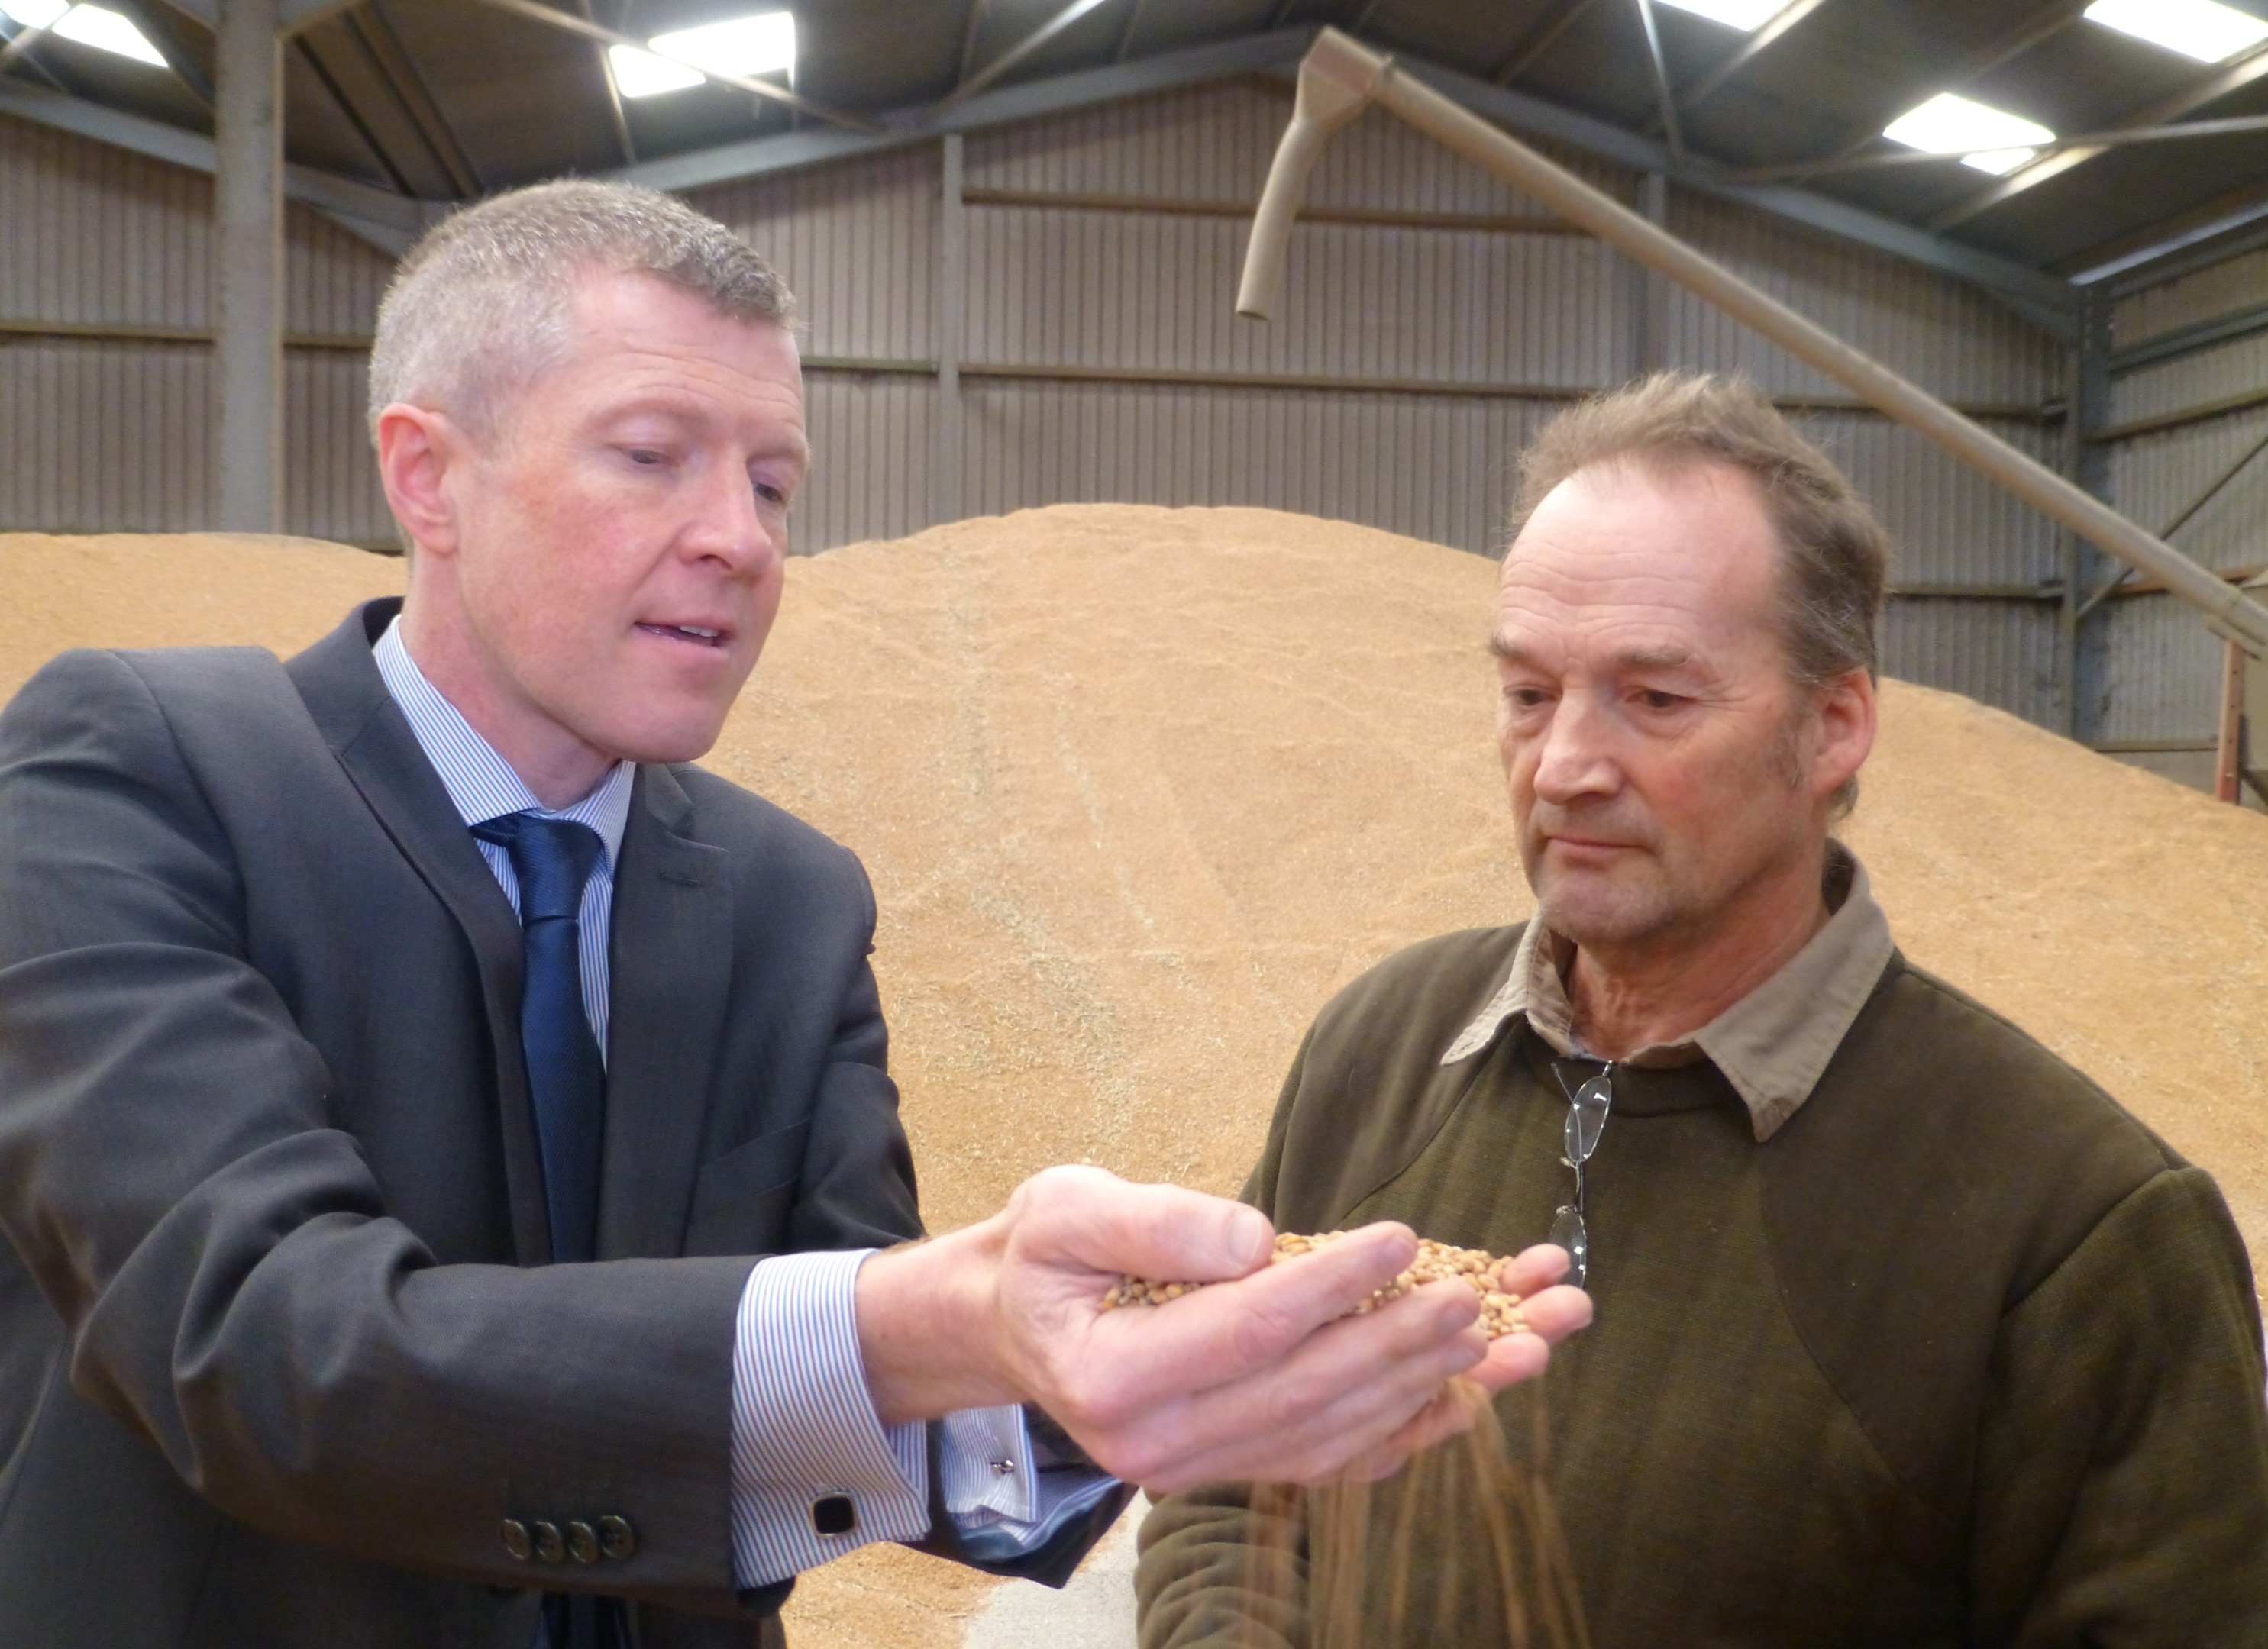 Willie Rennie visited Muirhead of Pitcullo farm